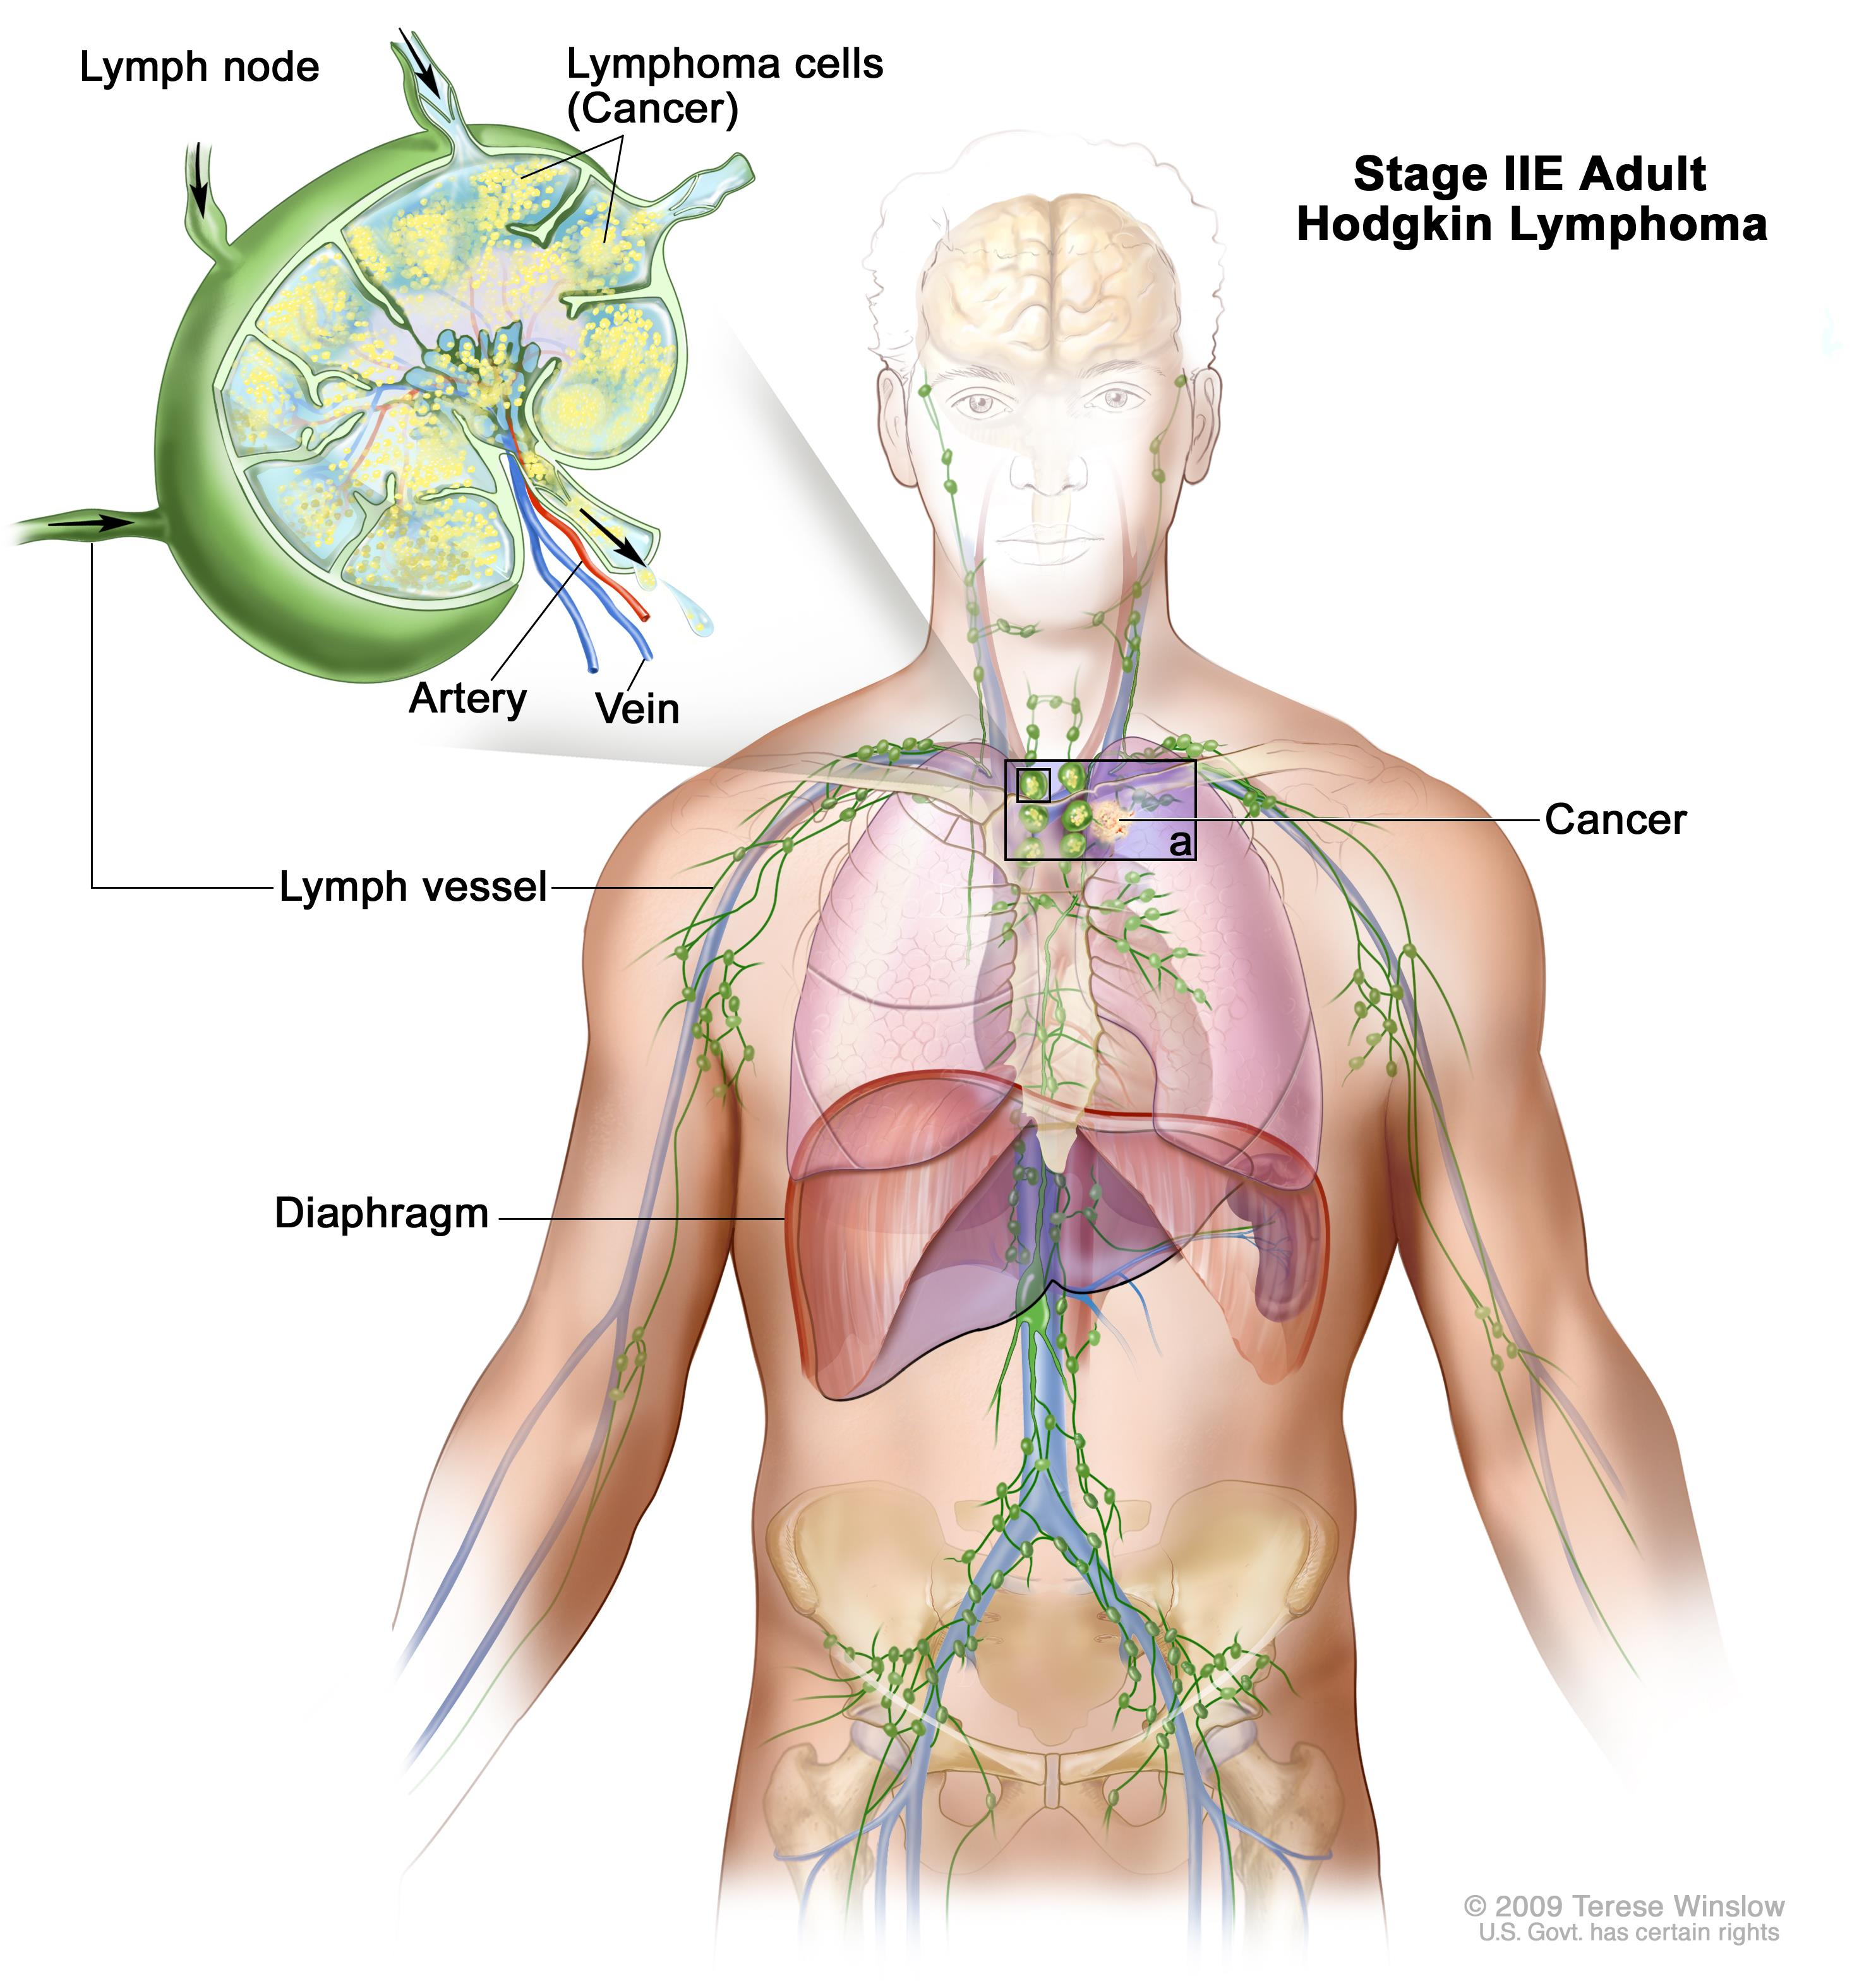 Stage IIE adult Hodgkin lymphoma; drawing shows cancer in one lymph node group above the diaphragm and in the left lung. An inset shows a lymph node with a lymph vessel, an artery, and a vein. Lymphoma cells containing cancer are shown in the lymph node.